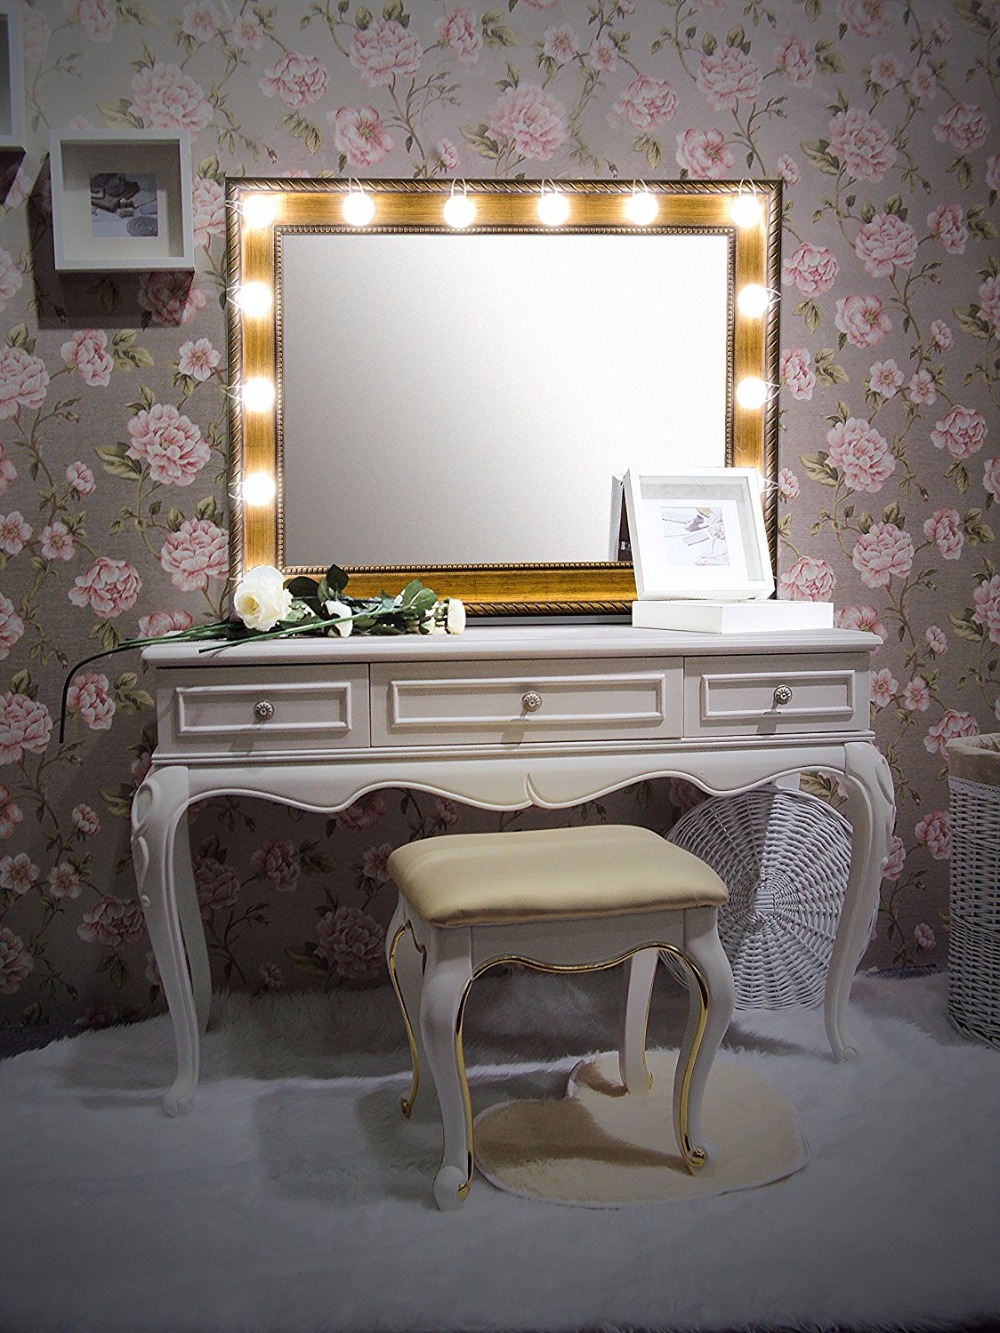 Diy vanity table and mirror to vanities hollywood vanity for Miroir led ikea